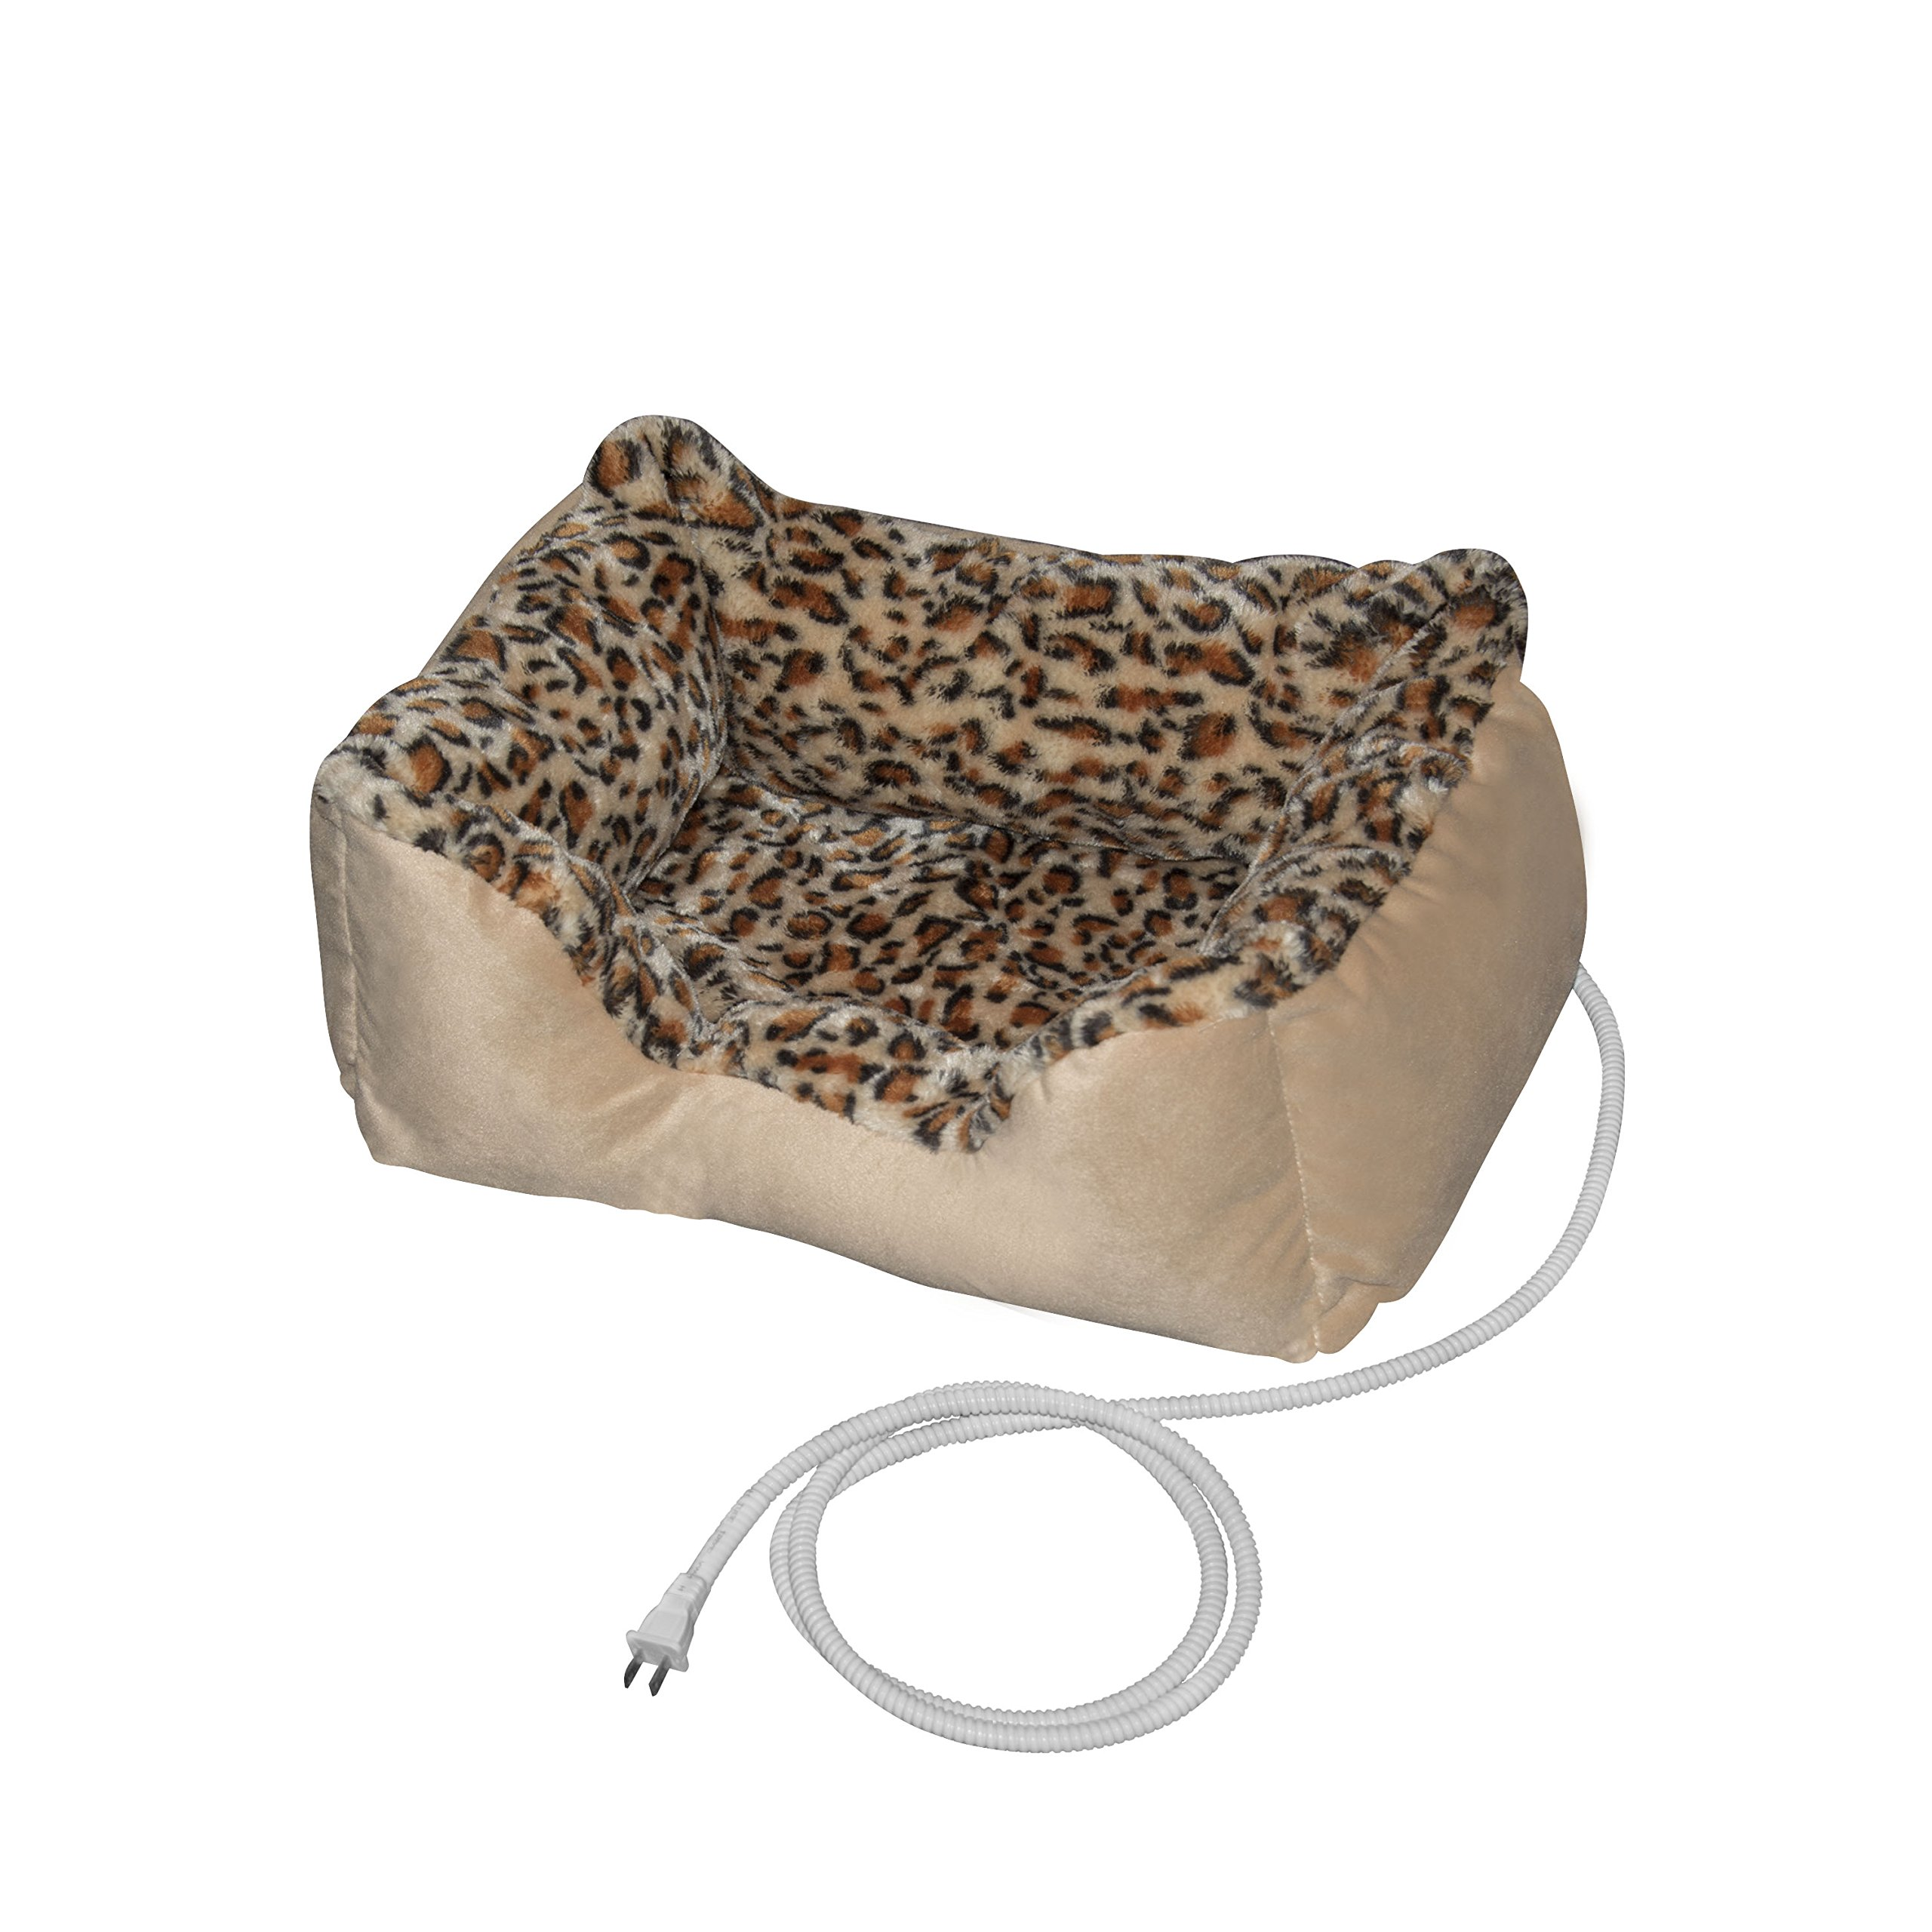 ALEKO PBH20X16X8 Electric Thermo-Pad Heated Pet Bed for Dogs and Cats 20 x 16 x 8 Inches Leopard Print